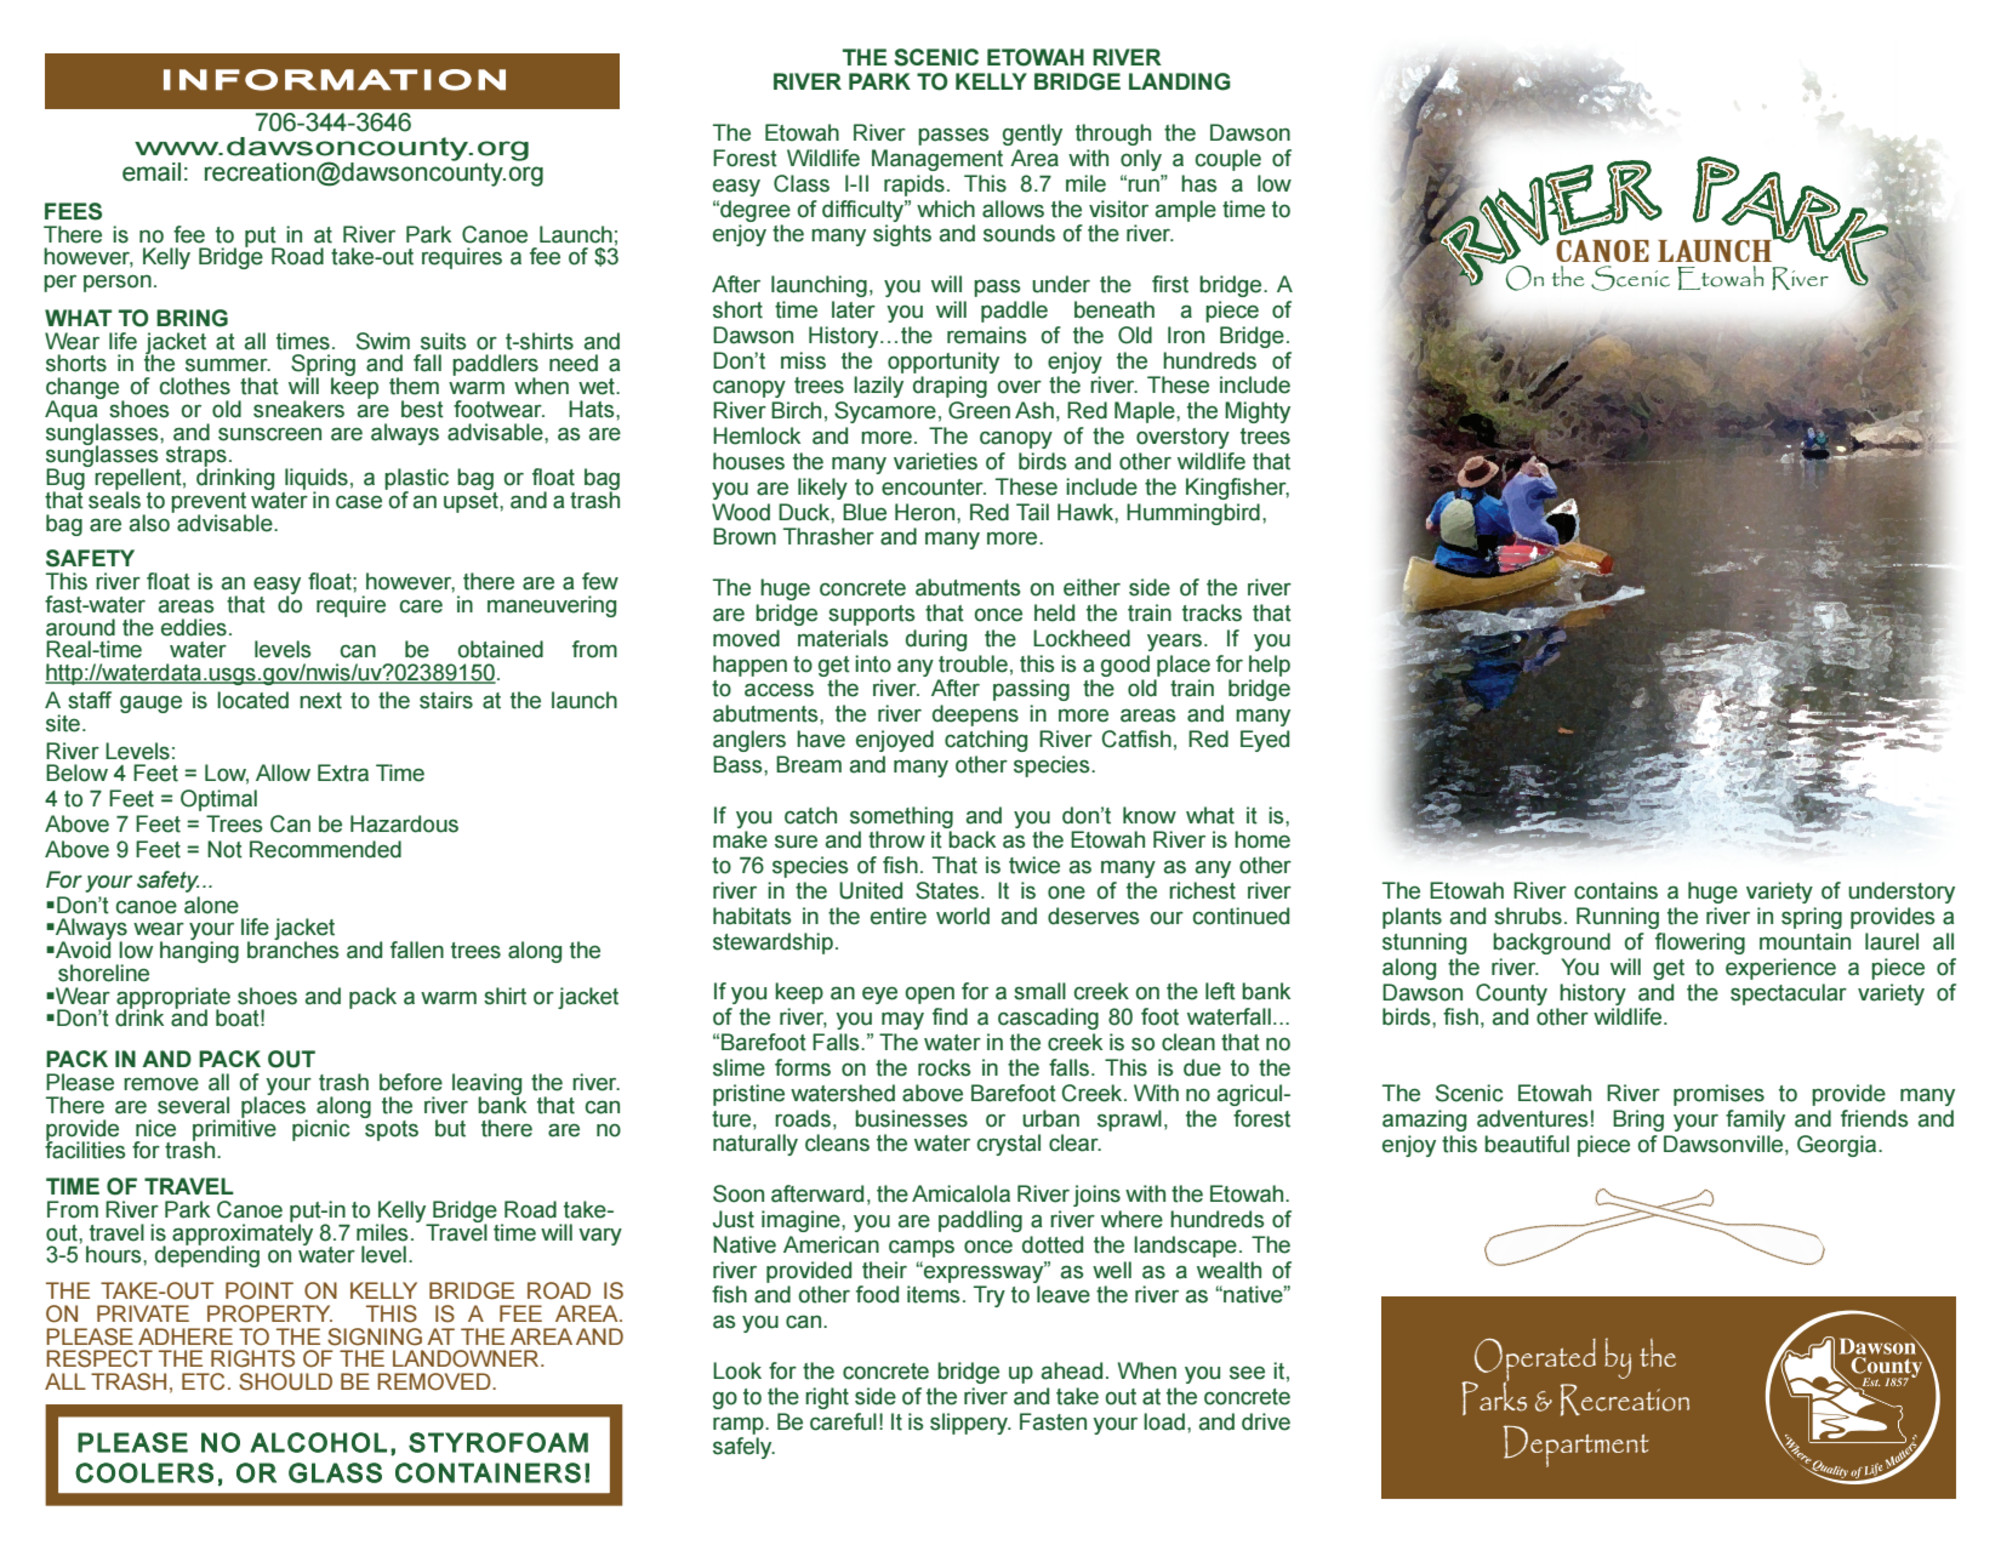 River Park Canoe Launch Brochure